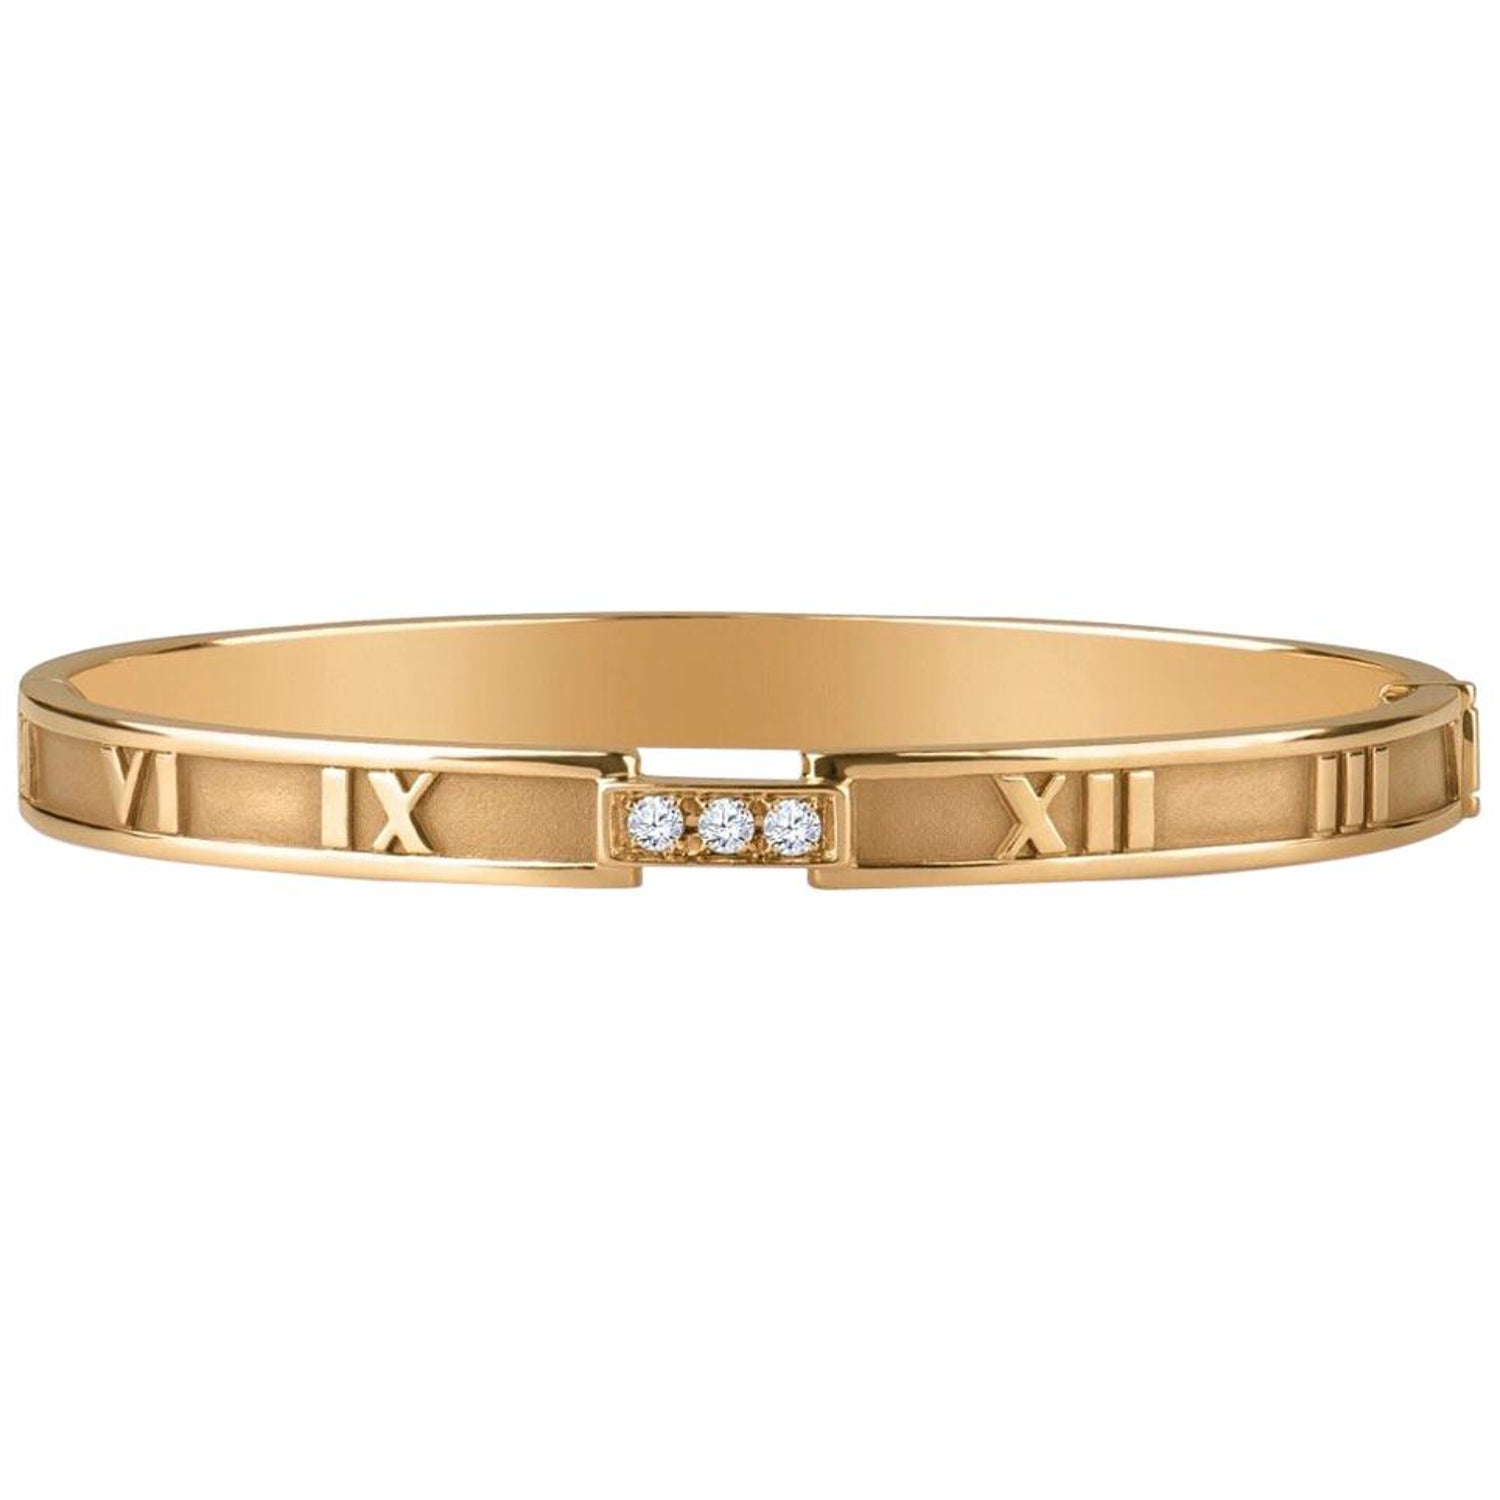 ebbb31ddd Tiffany and Co. 18k Atlas Closed Hinged Bangle with 3 Round Diamonds,  0.15CTW at 1stdibs